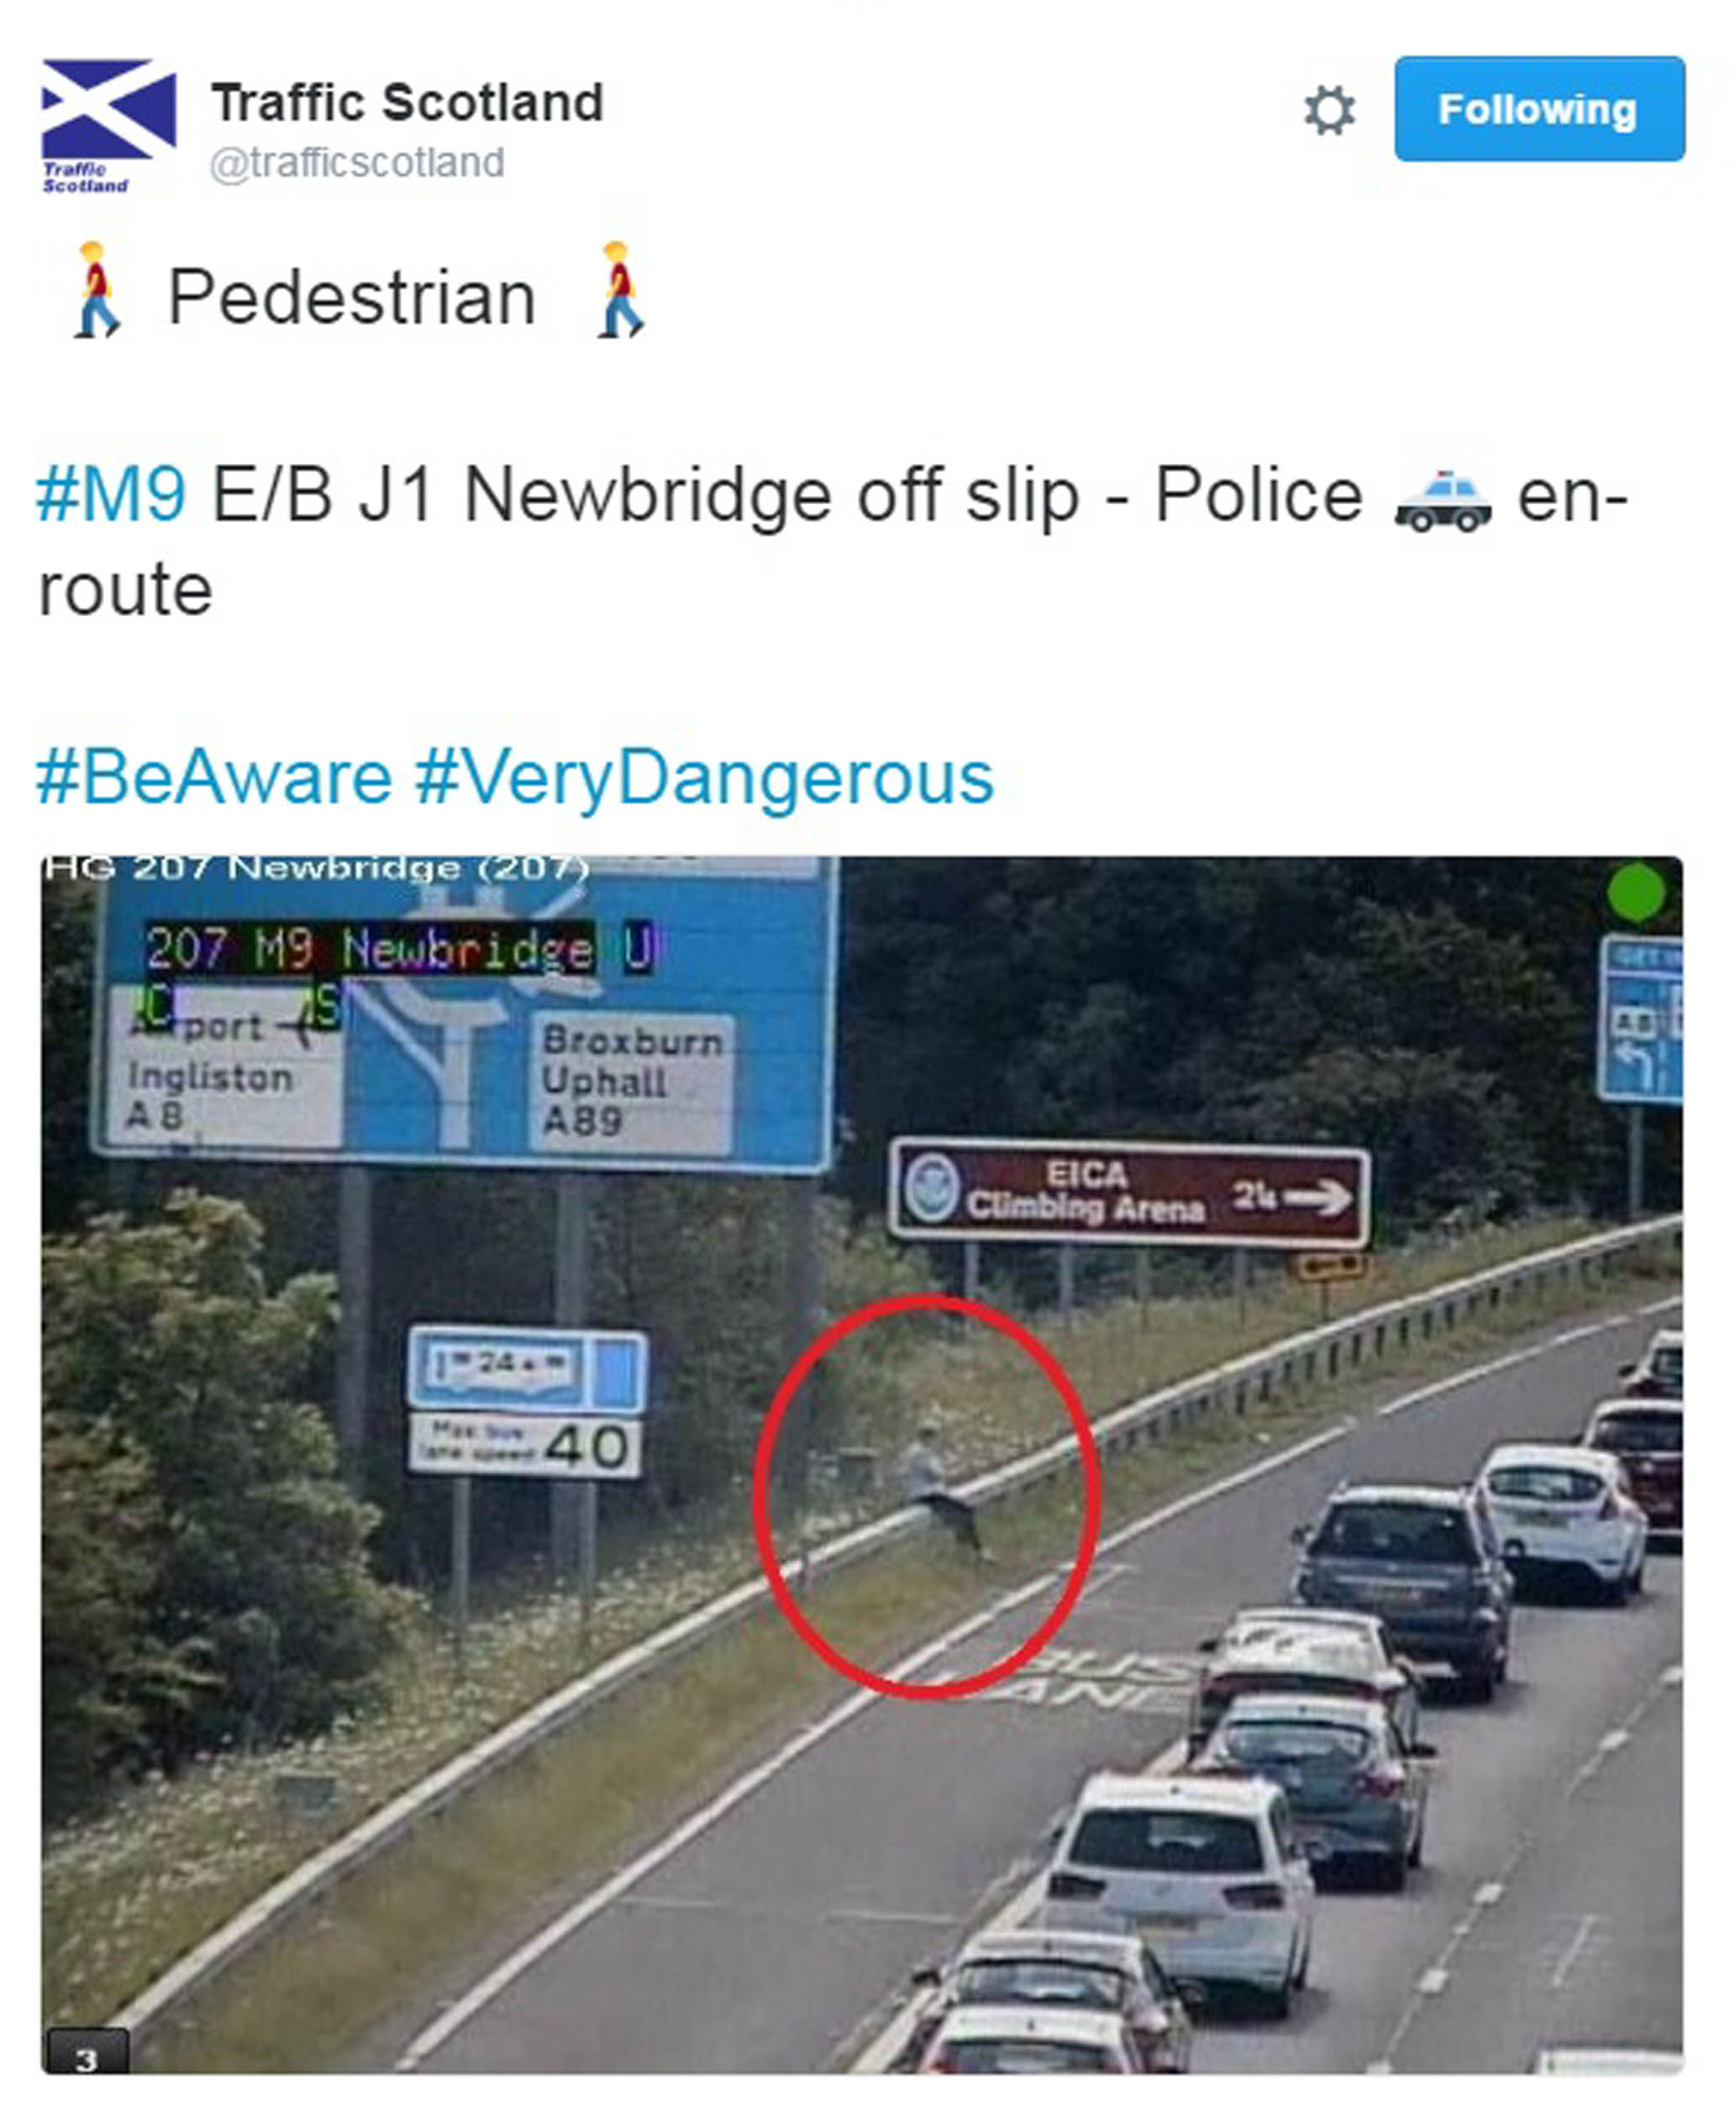 The image was tweeted by the Traffic Scotland account.